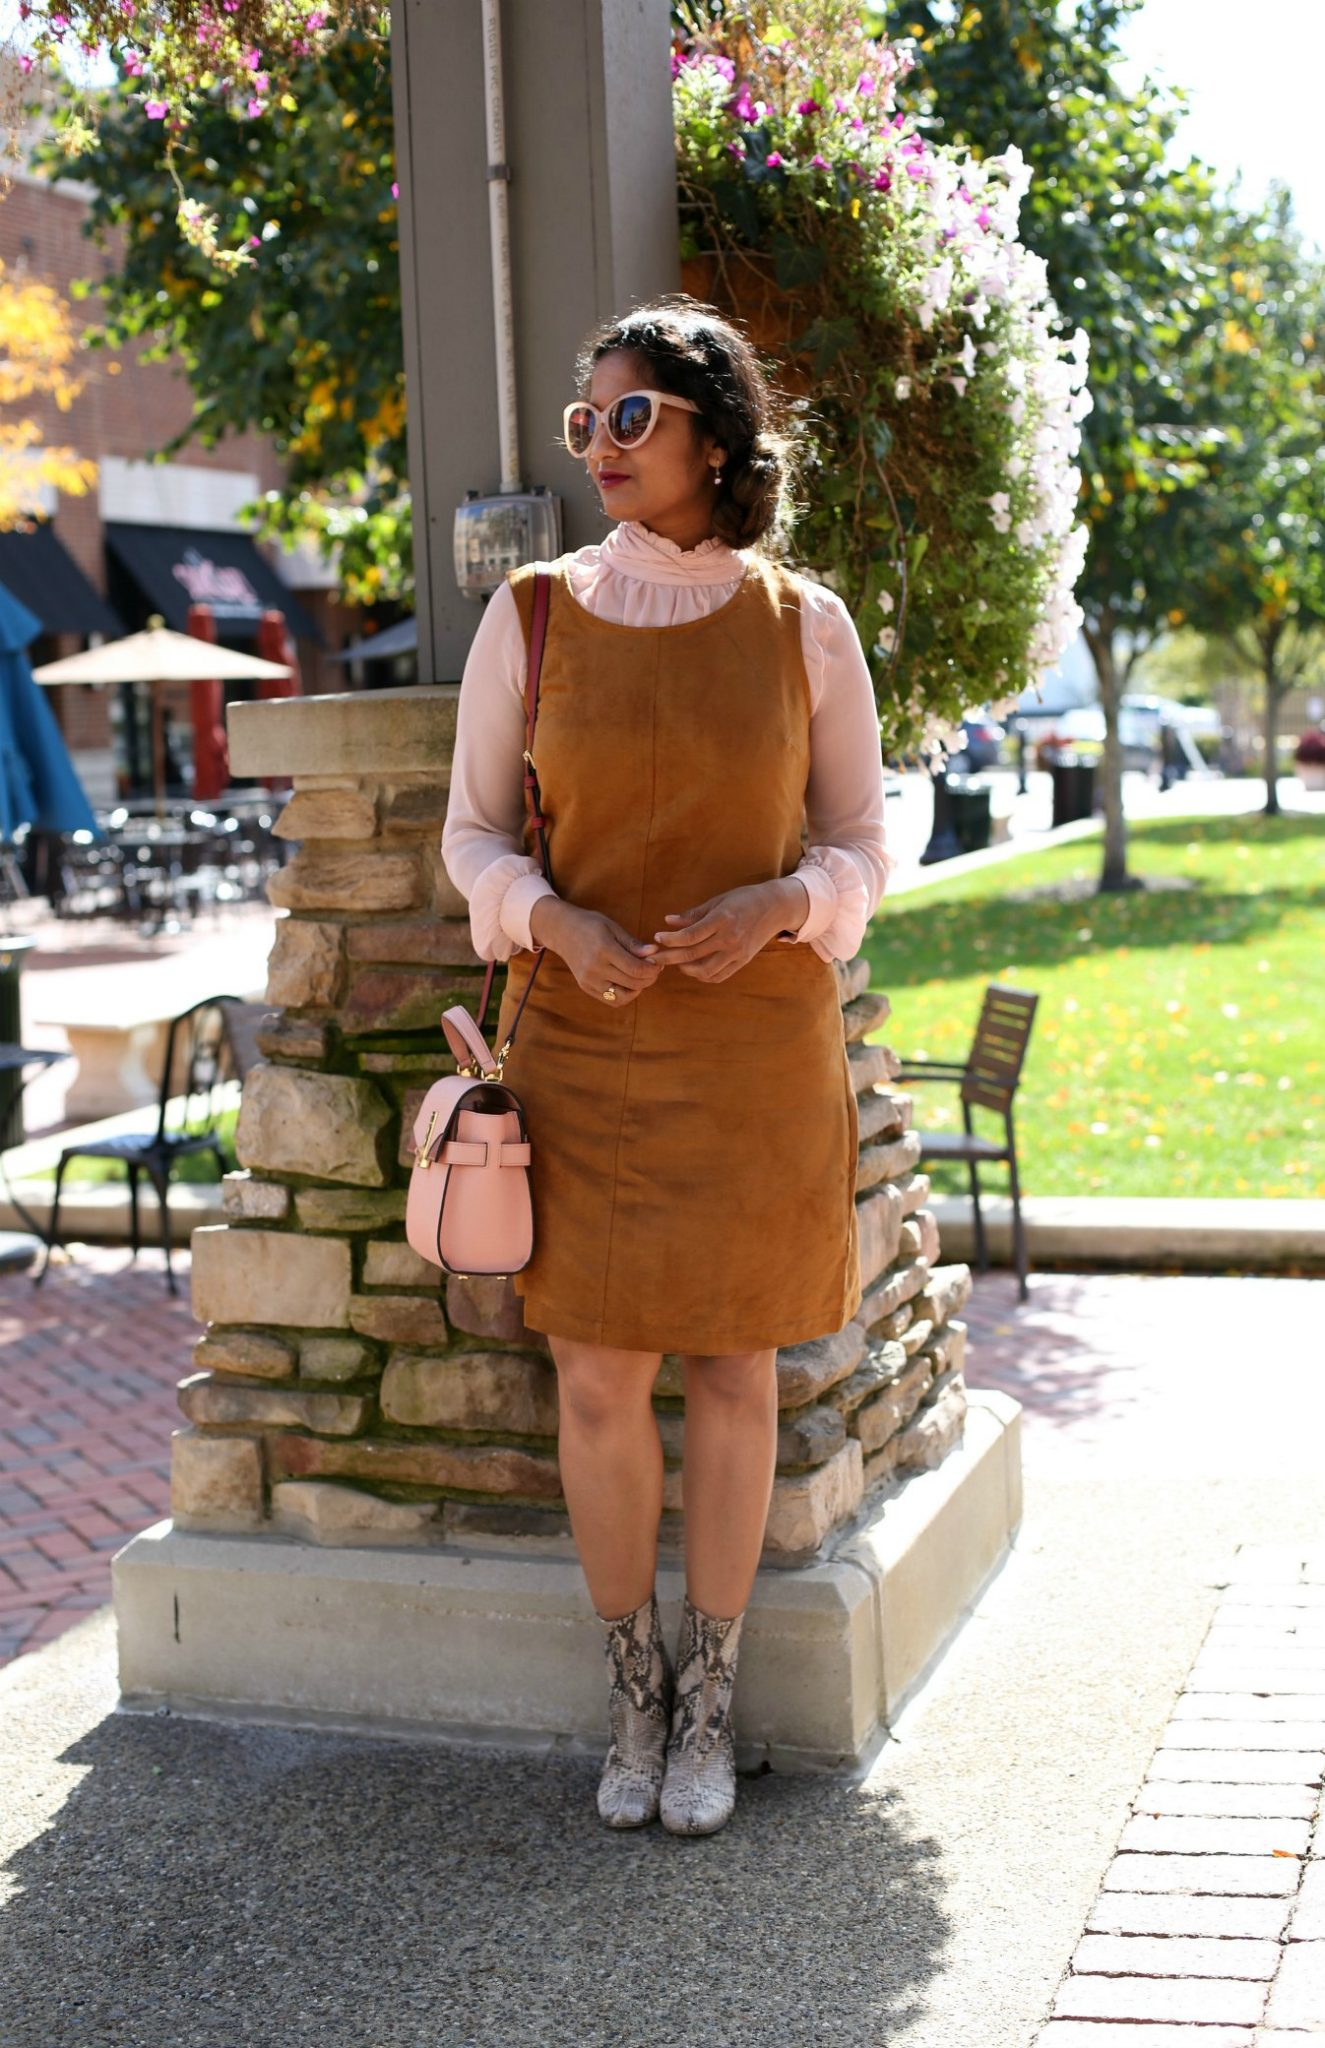 Lifestyle blog dreaming loud sharing chic spring outfit ideas 2018 wearing suede overall dress - Spring Outfit Ideas featured by popular Ohio modest fashion blogger, Dreaming Loud